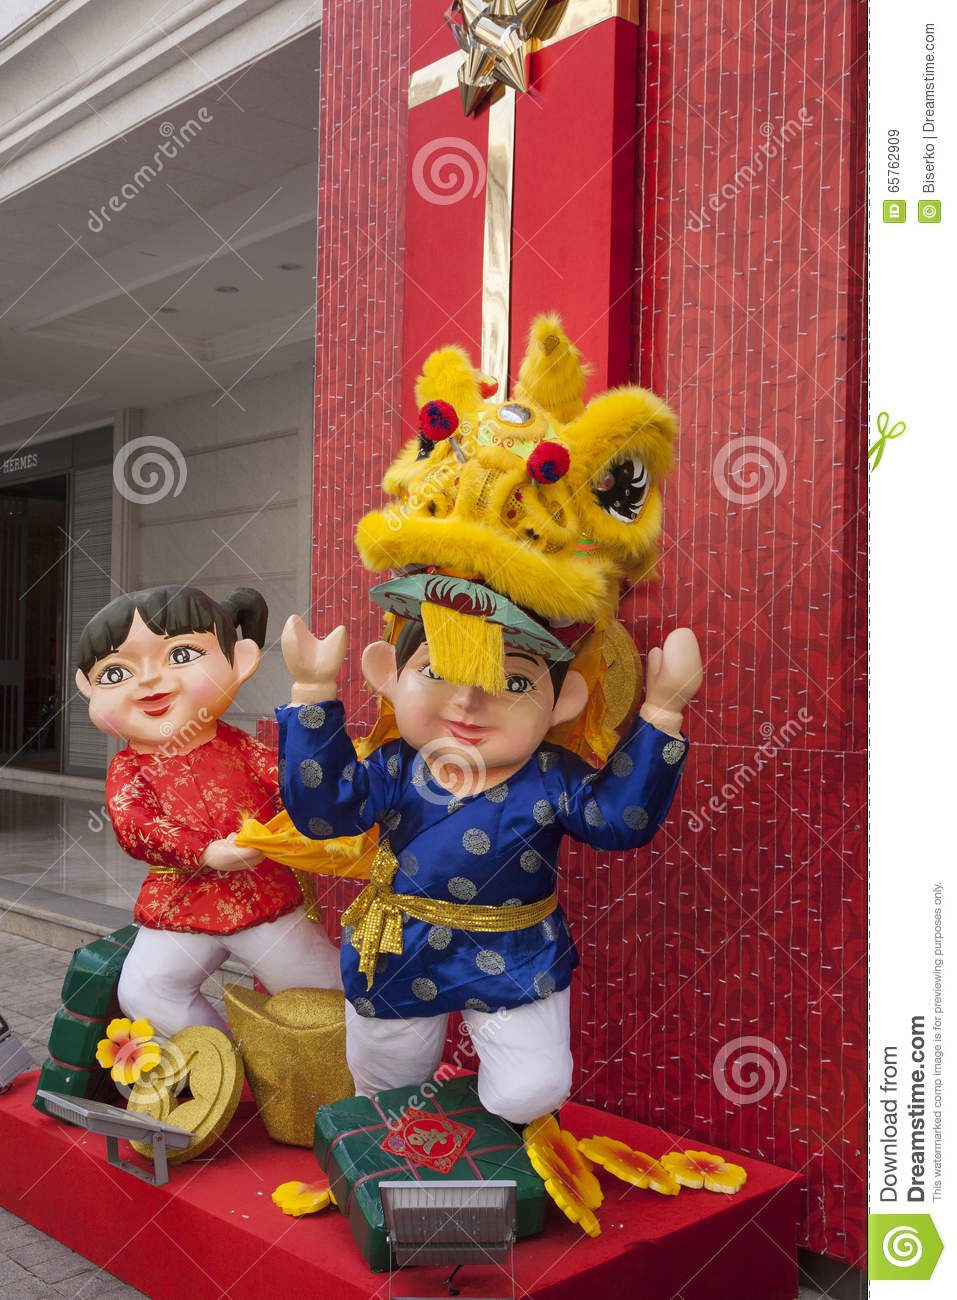 Lunar new year decorations editorial stock image image - Lunar new year decorations ...